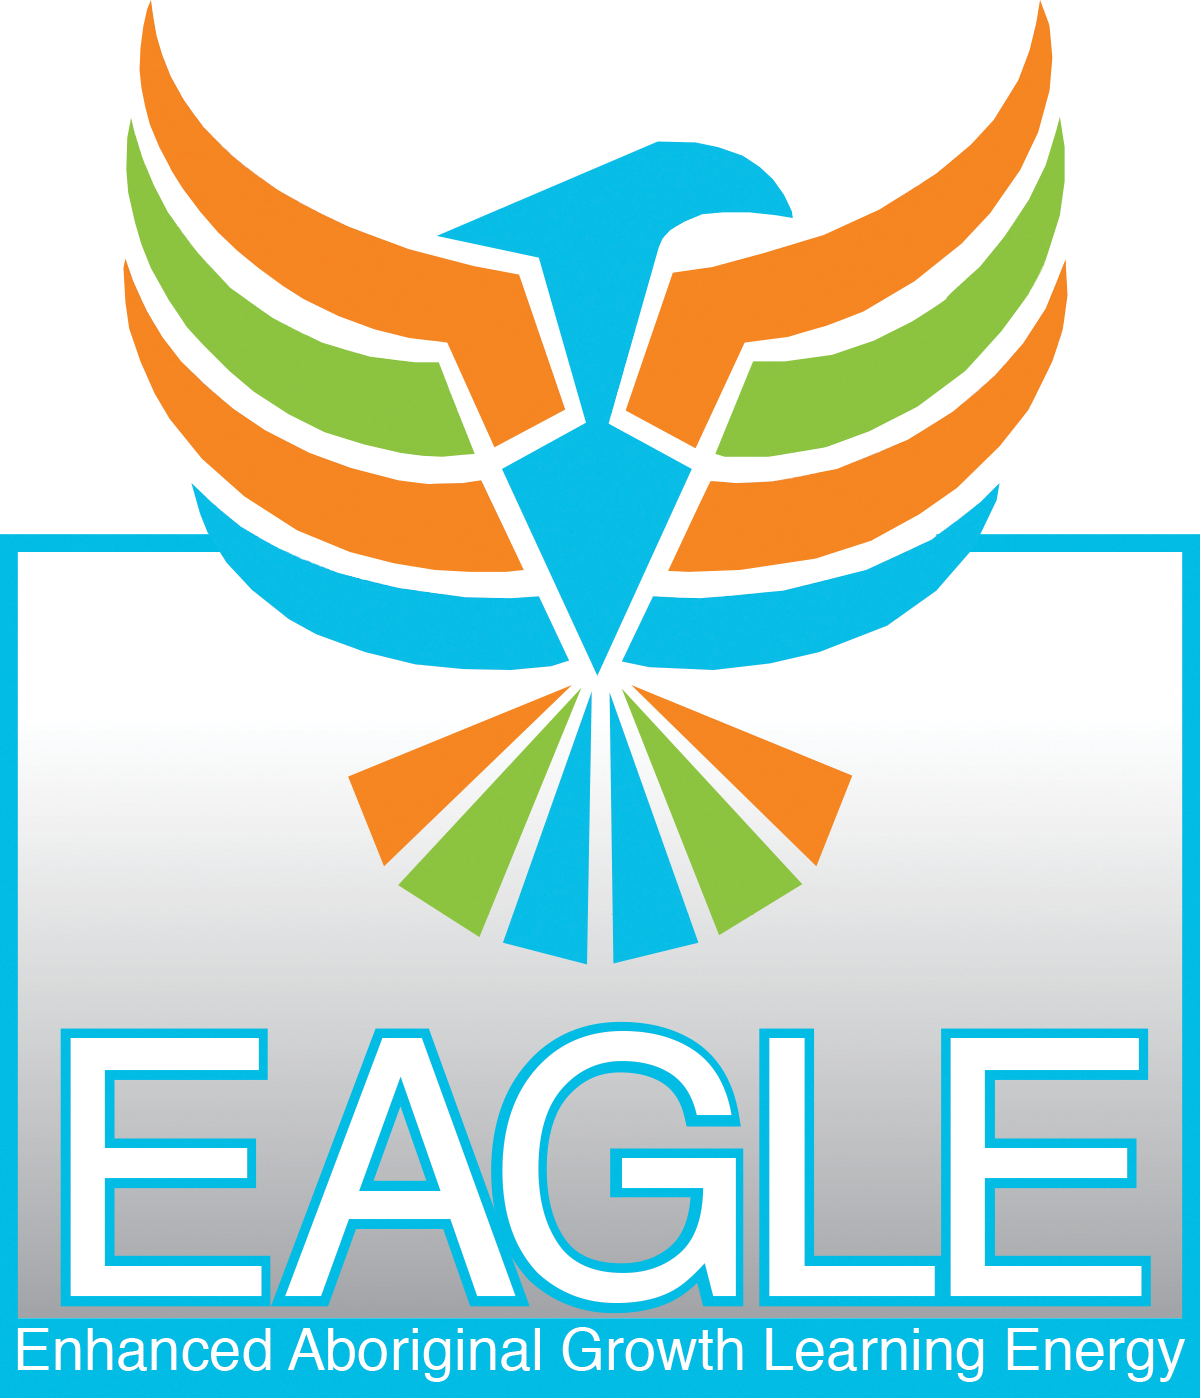 Zedi EAGLE program